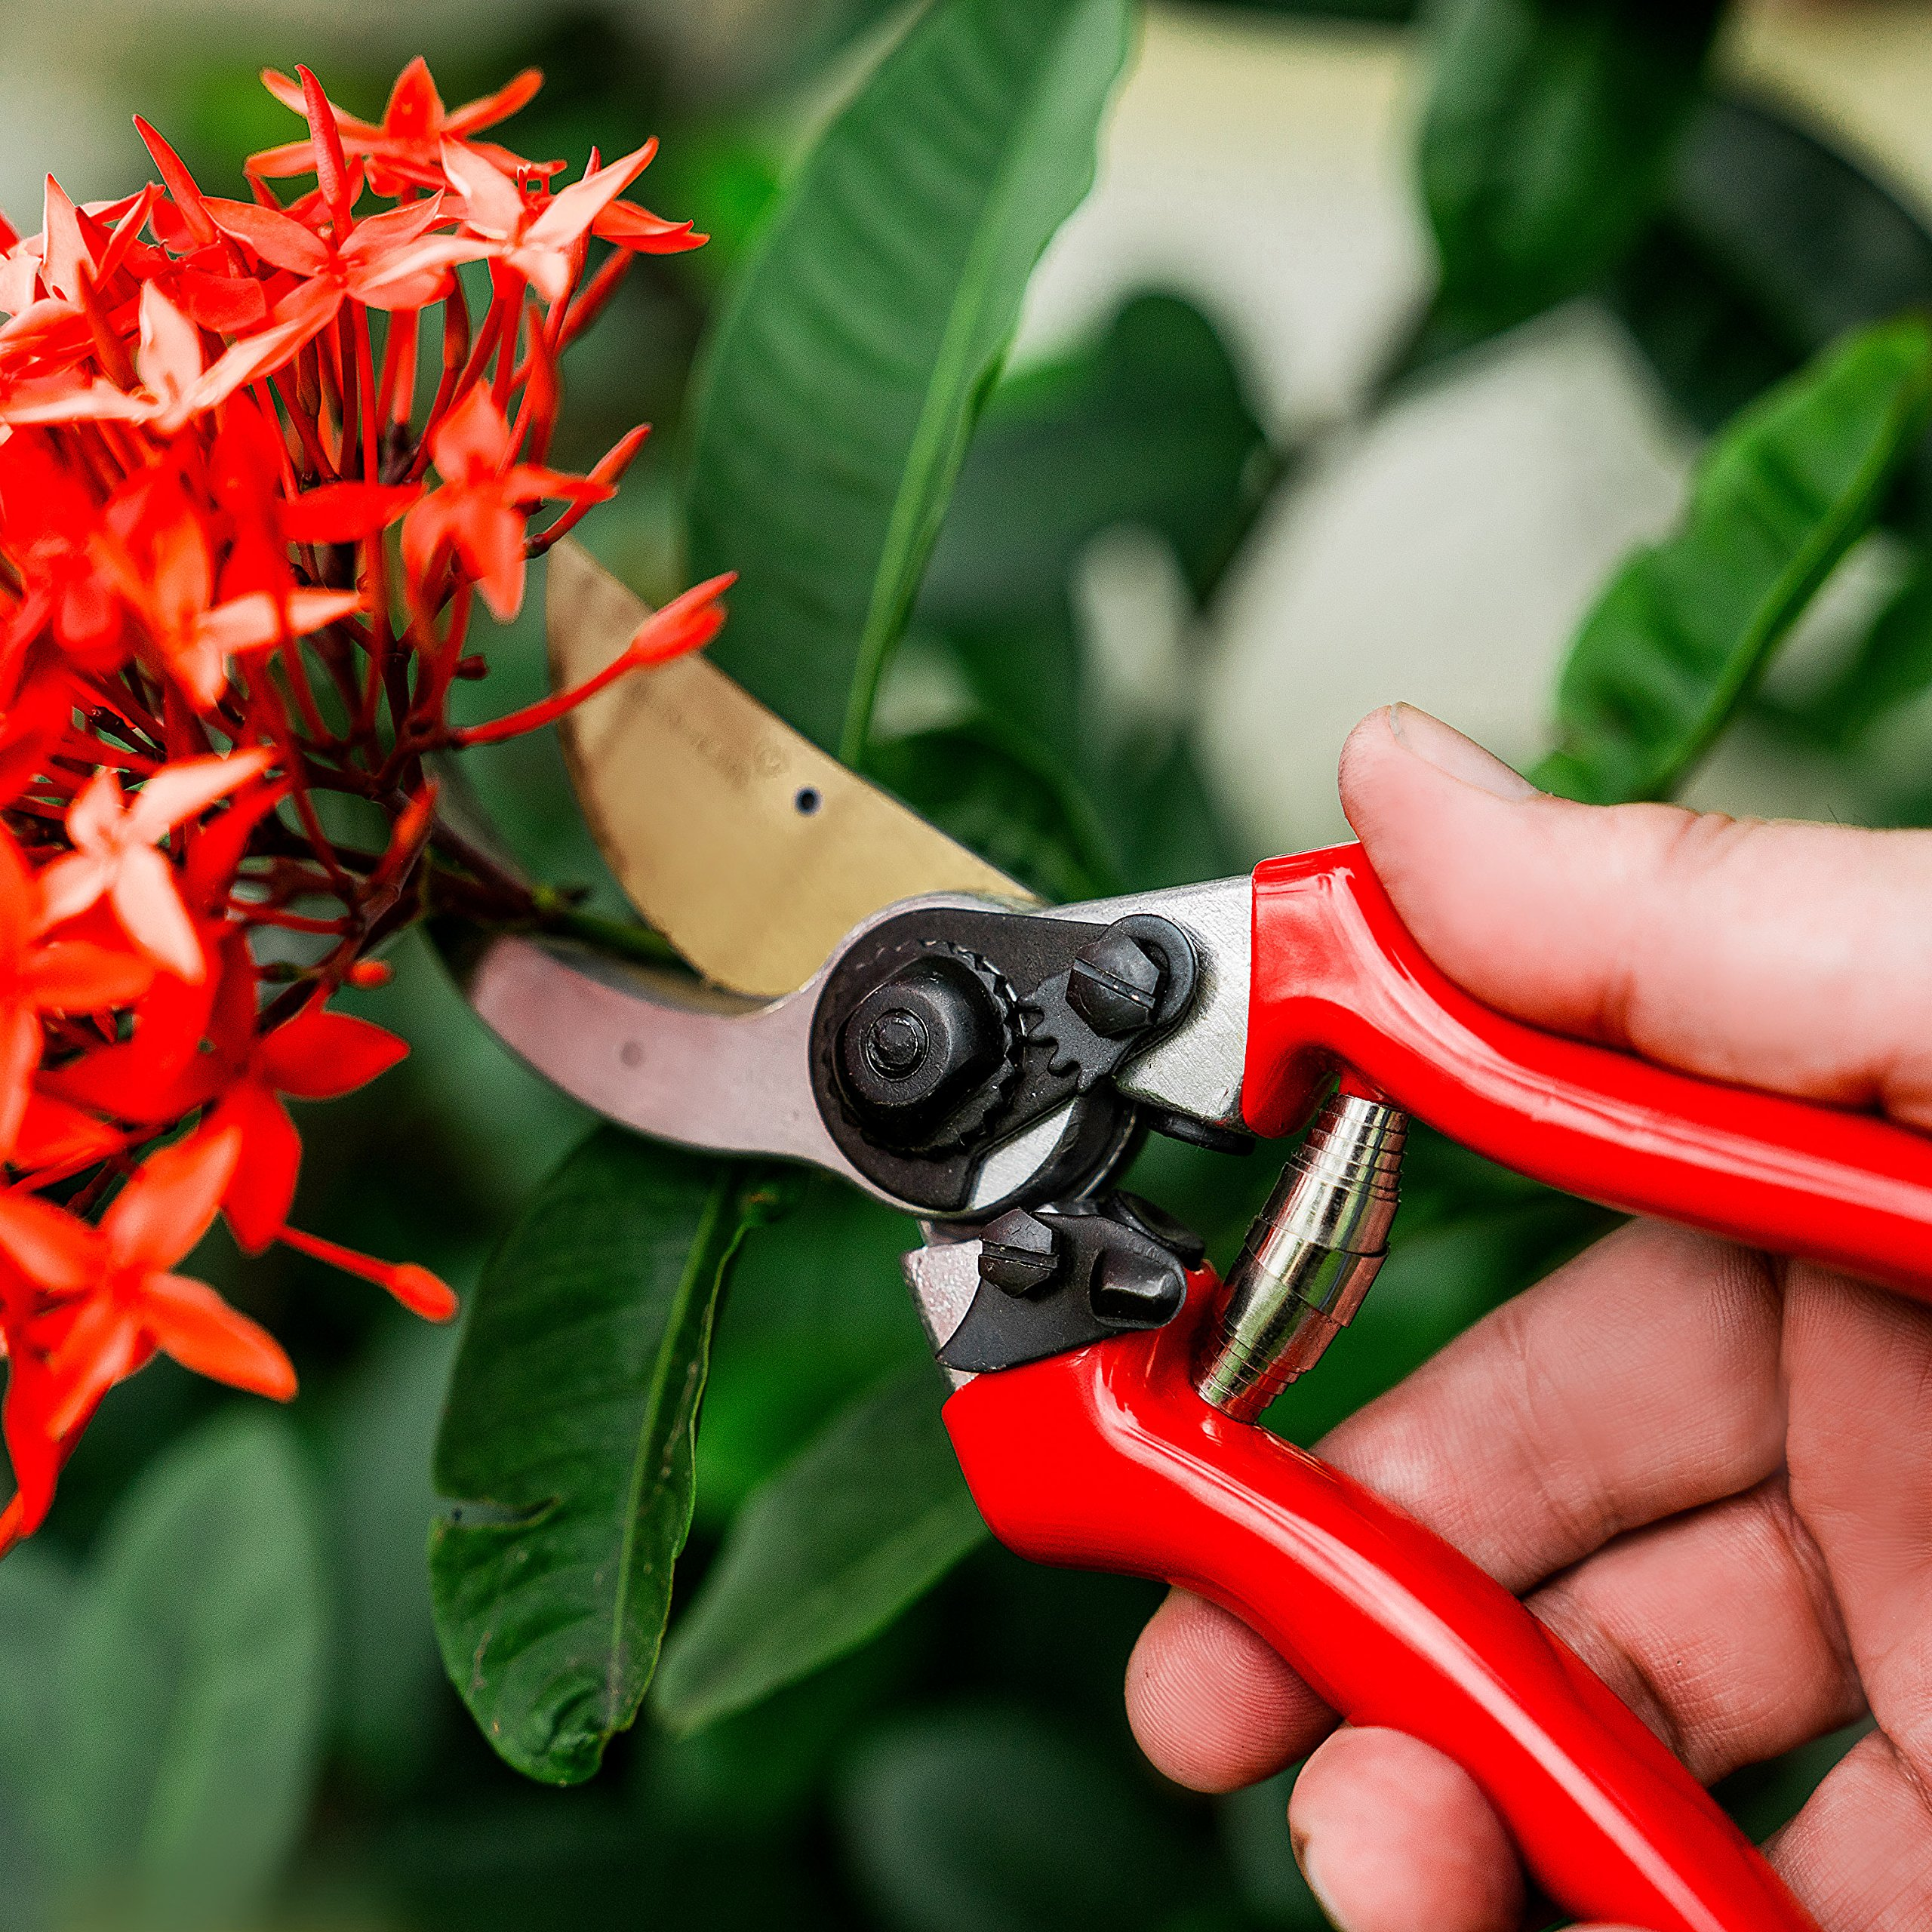 All Weather Pruning Scissors - Drop Forged, Corrosion Resistant, Bypass Hand Shears with Safety Lock - Ultra Sharp Plant Cutters for Indoor and Outdoor Gardeners - 5 Pack